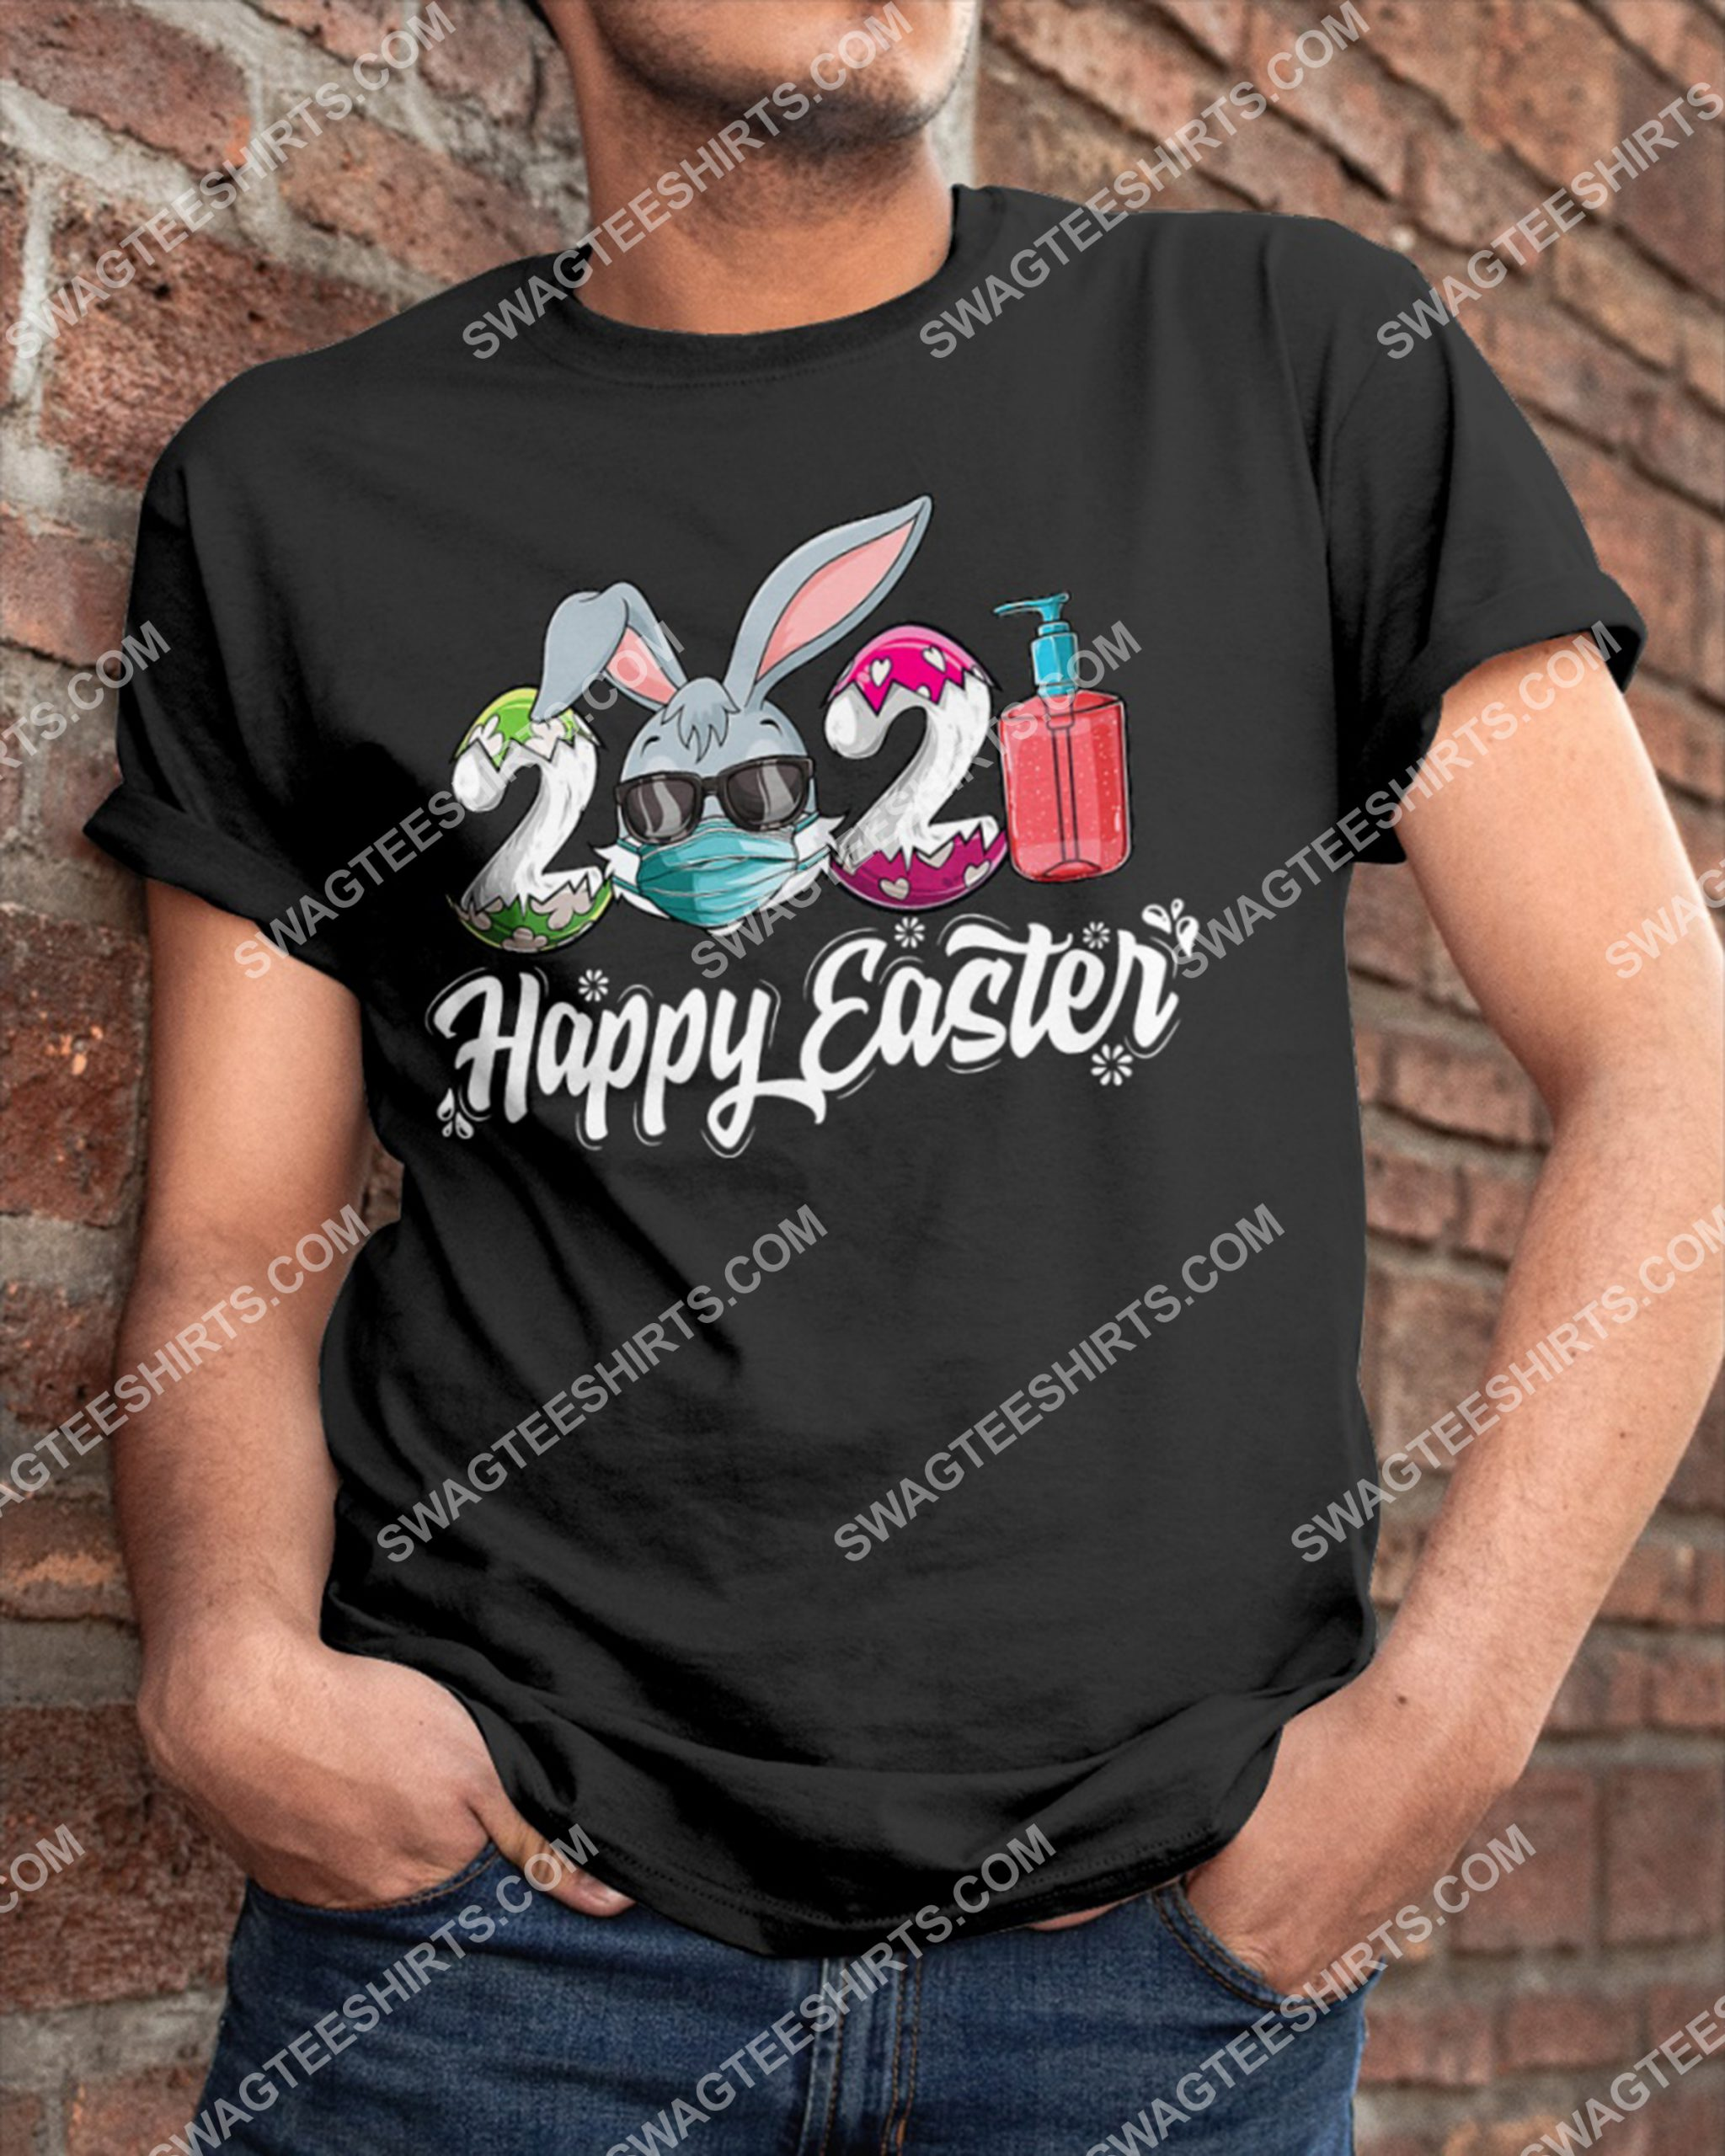 Happy Easter Day 2021 Bunny Wearing Mask Shirt 3(1) - Copy